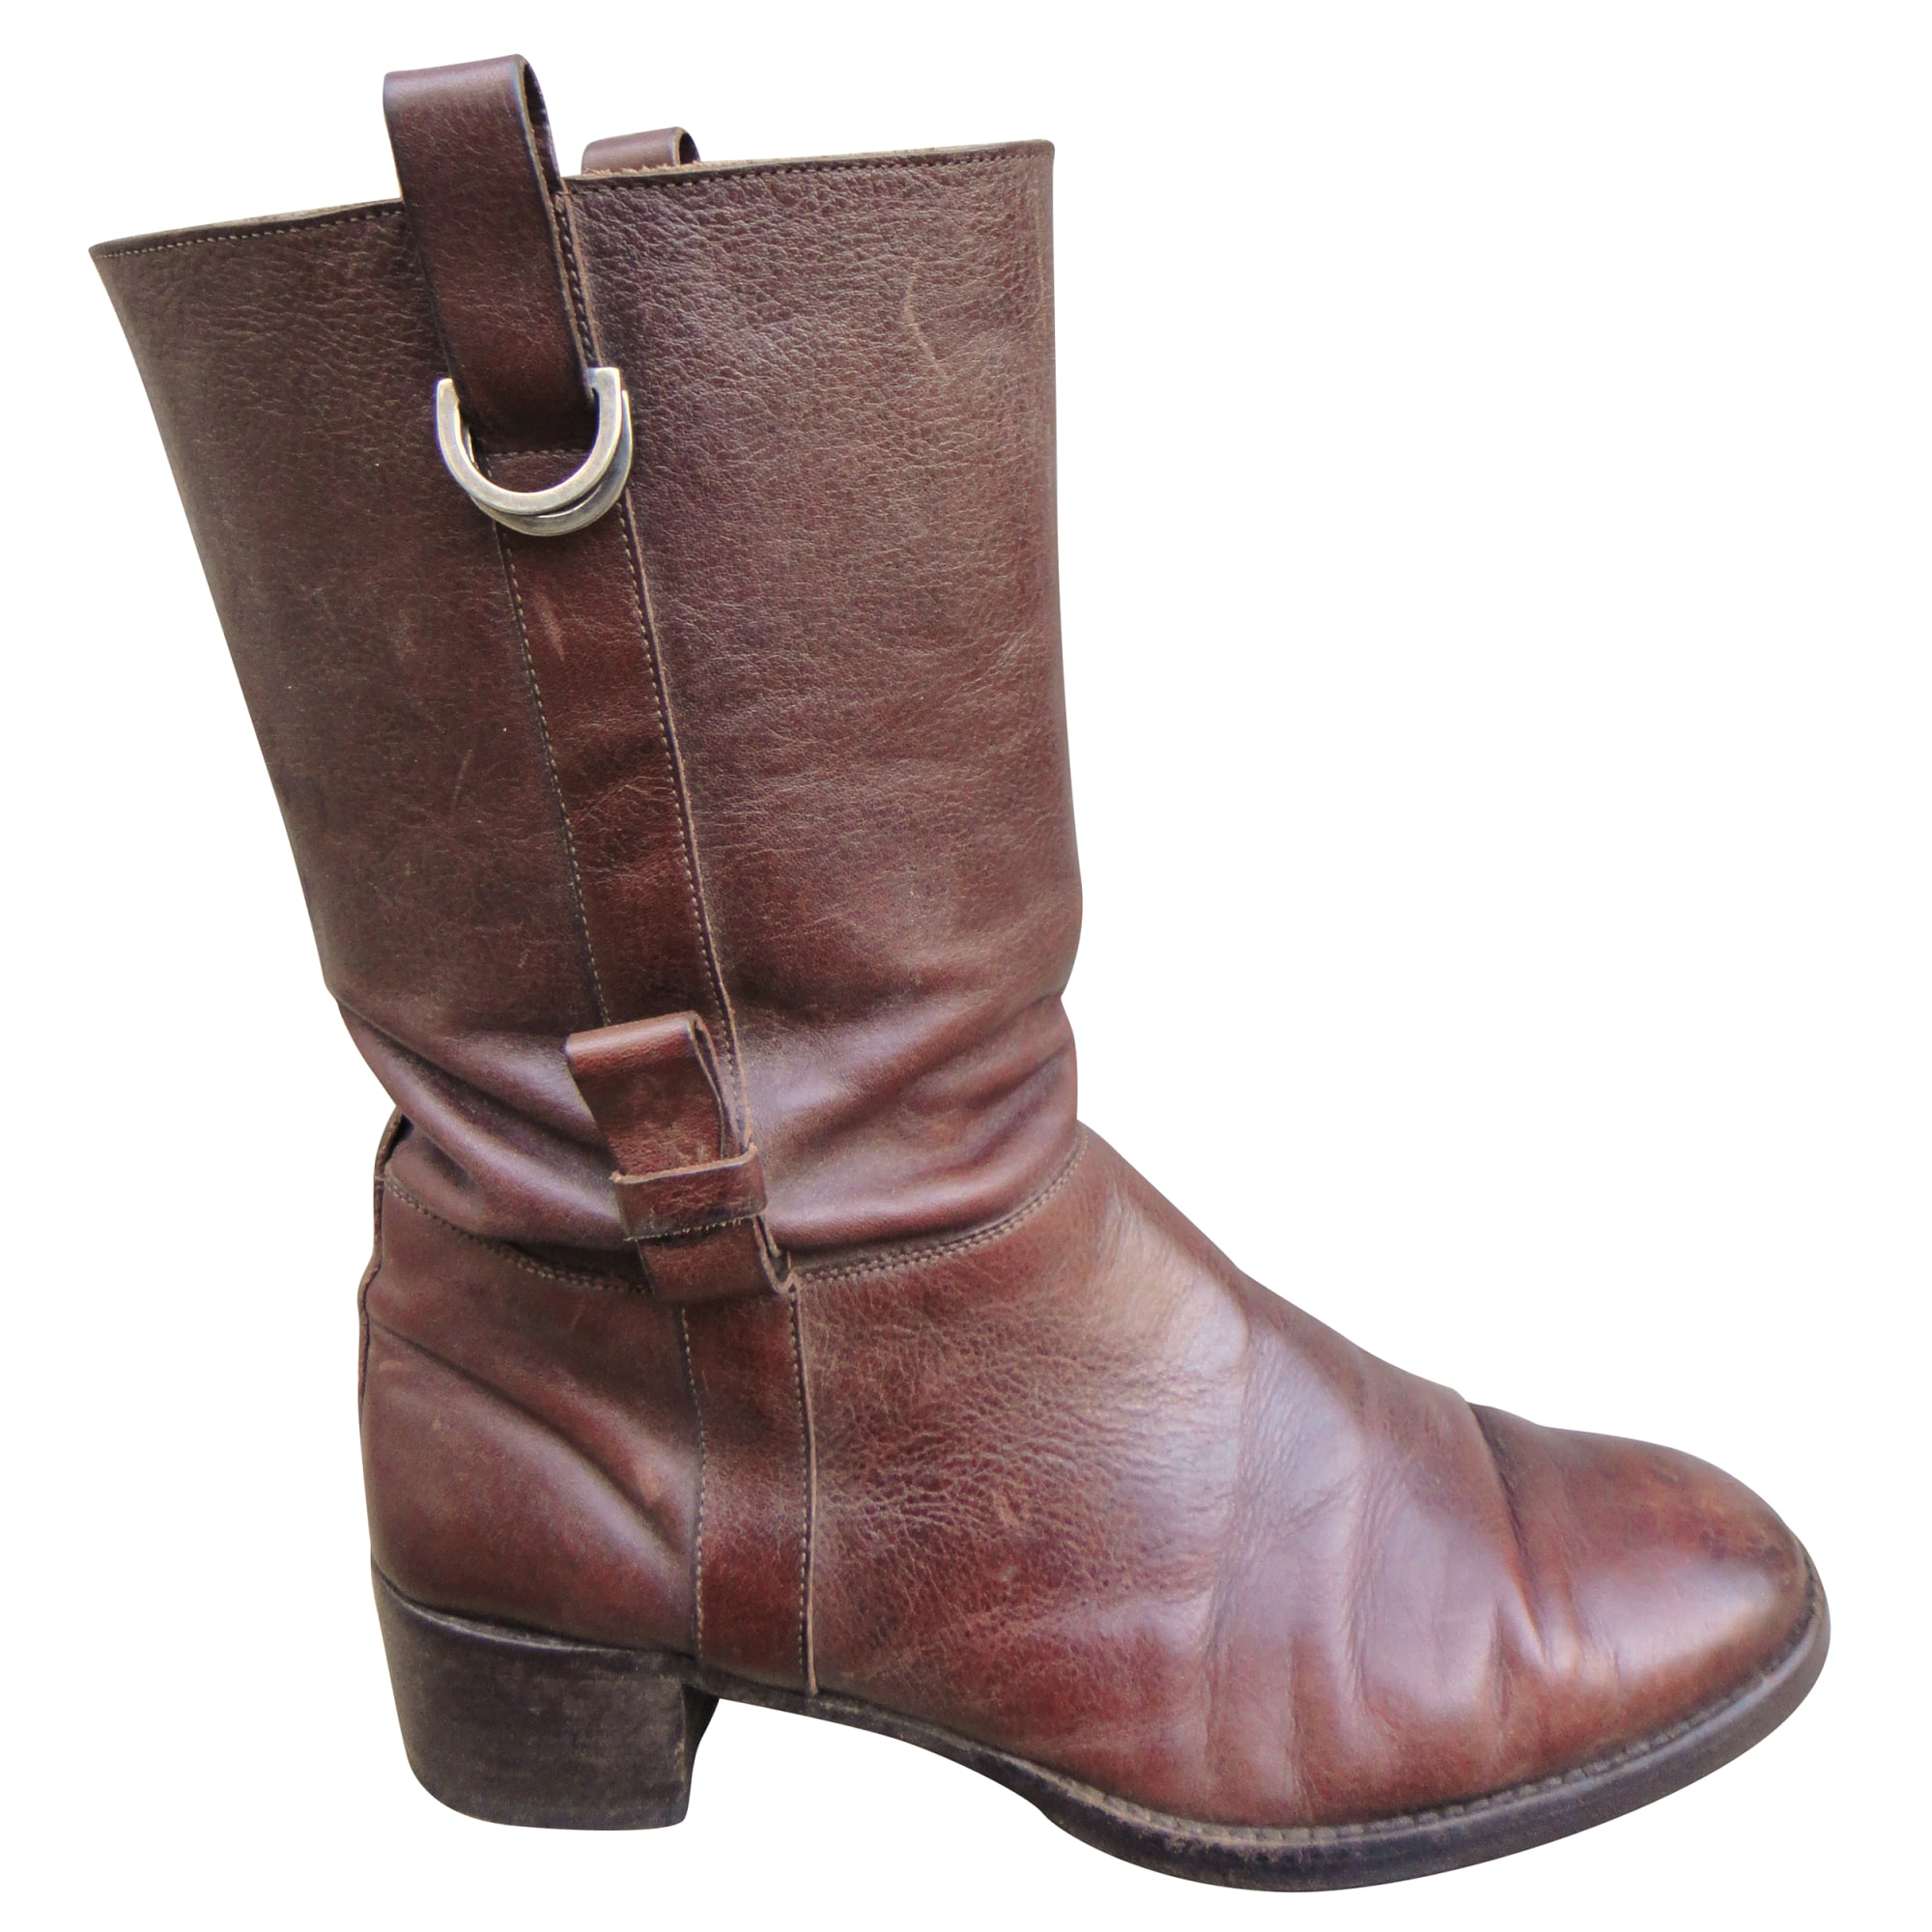 Flat Ankle Boots HESCHUNG Brown